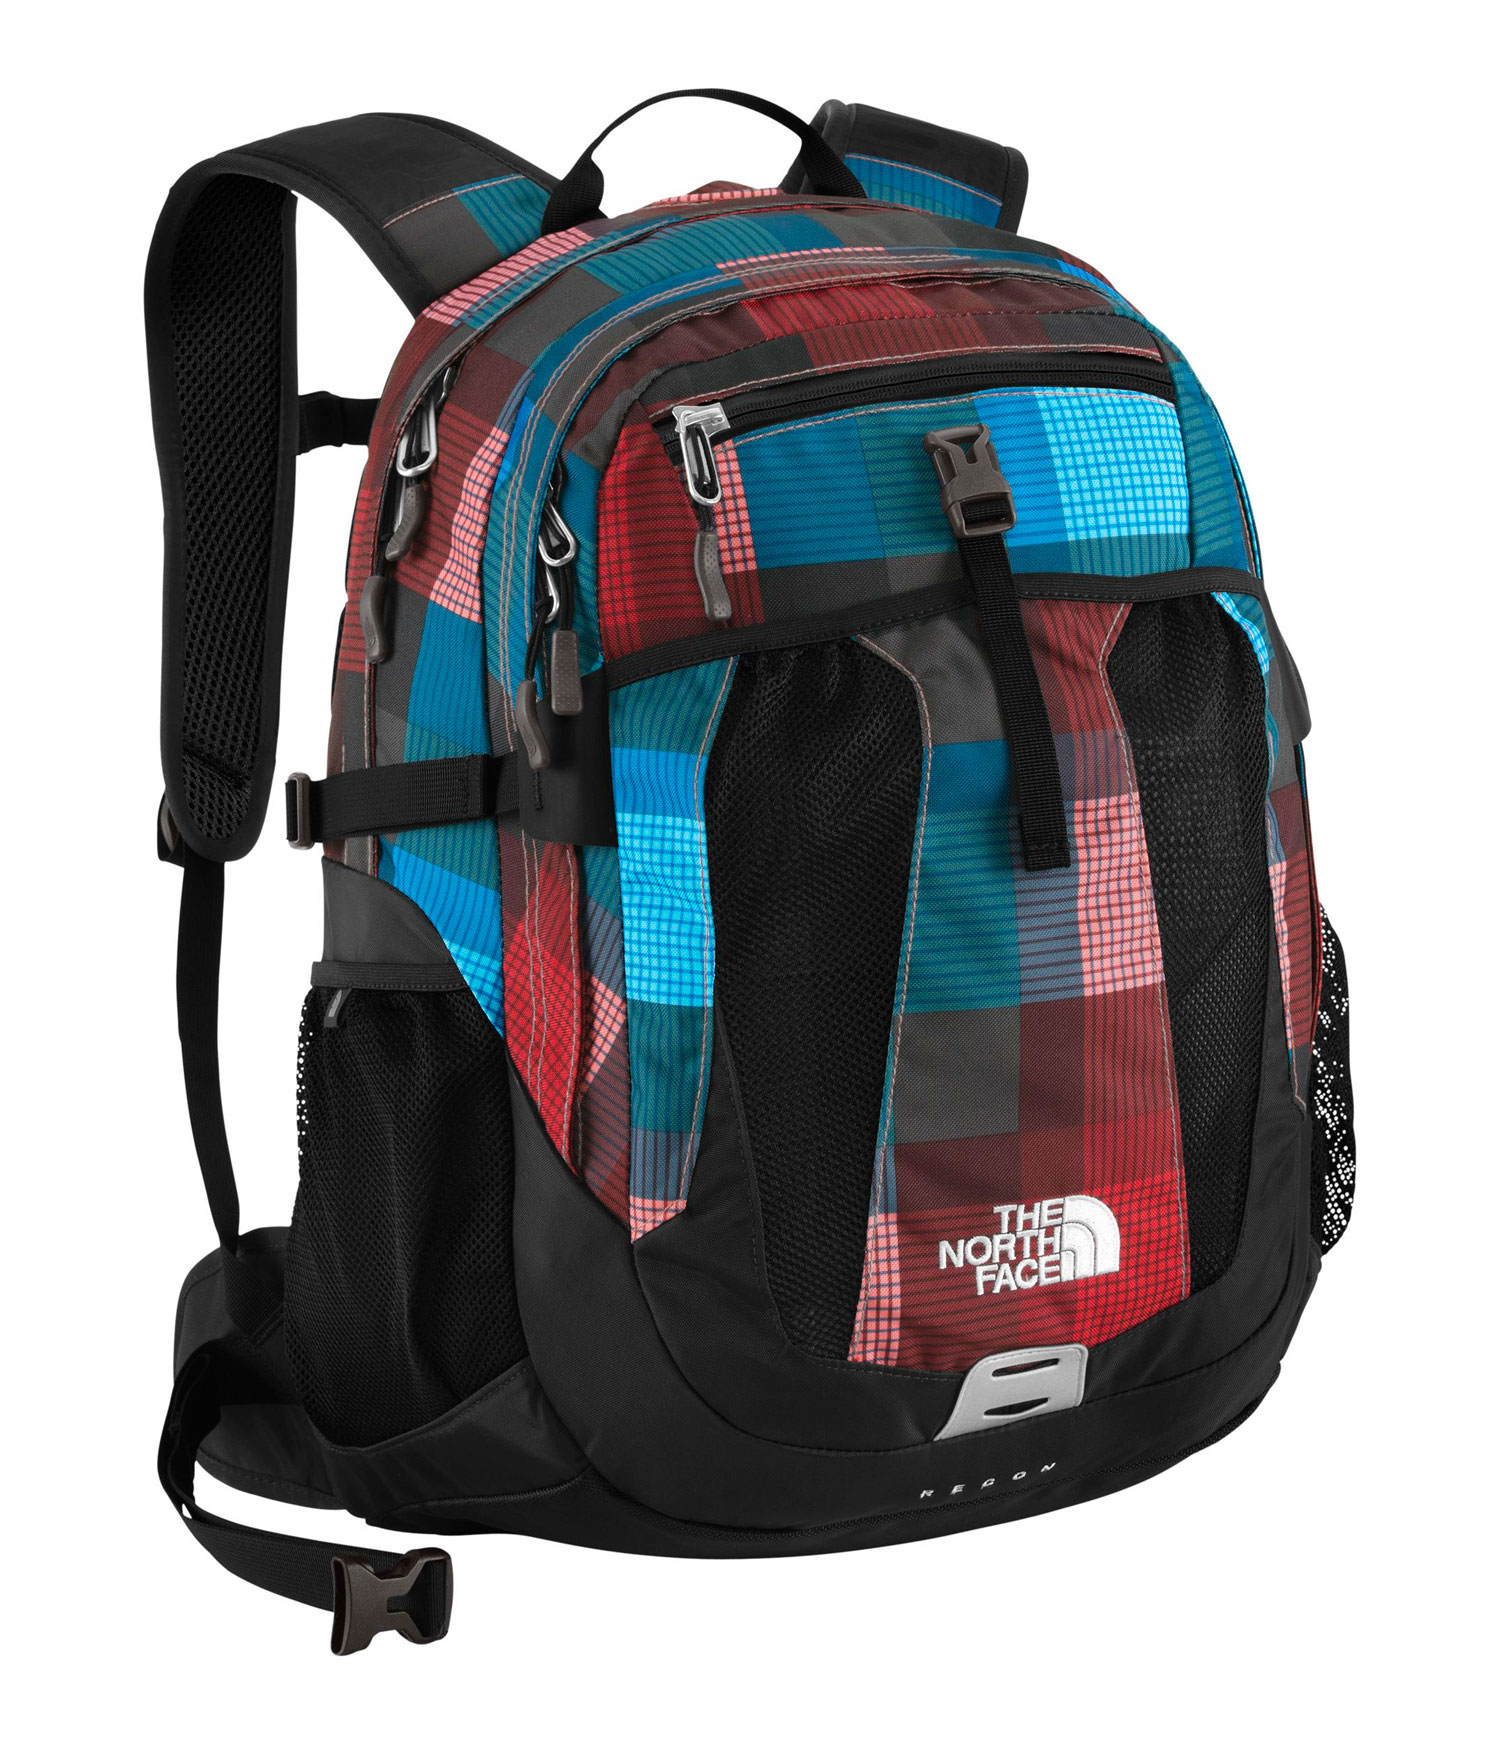 Key Features of The North Face Recon Backpack: Avg Weight: 2 lbs 10 oz (1182 g) Volume: 1770 in3 (29 liters) Fabric: 420D nylon, 600D polyester print, 1680D ballistics nylon FlexVent ™ injection-molded shoulder straps with additional PE foam for added comfort Comfortable, padded Airmesh back panel with Spine Channel and PE sheet for extra back support Integrated reflective light loop Winged, stowable hipbelt Large main compartment with variable-sized laptop sleeve, organization and hydration port Secondary compartment with organization Large front mesh drop pocket Small front panel stash pocket Mesh side water bottle pockets Women-specific version of this daypack available on page 19 - $74.95